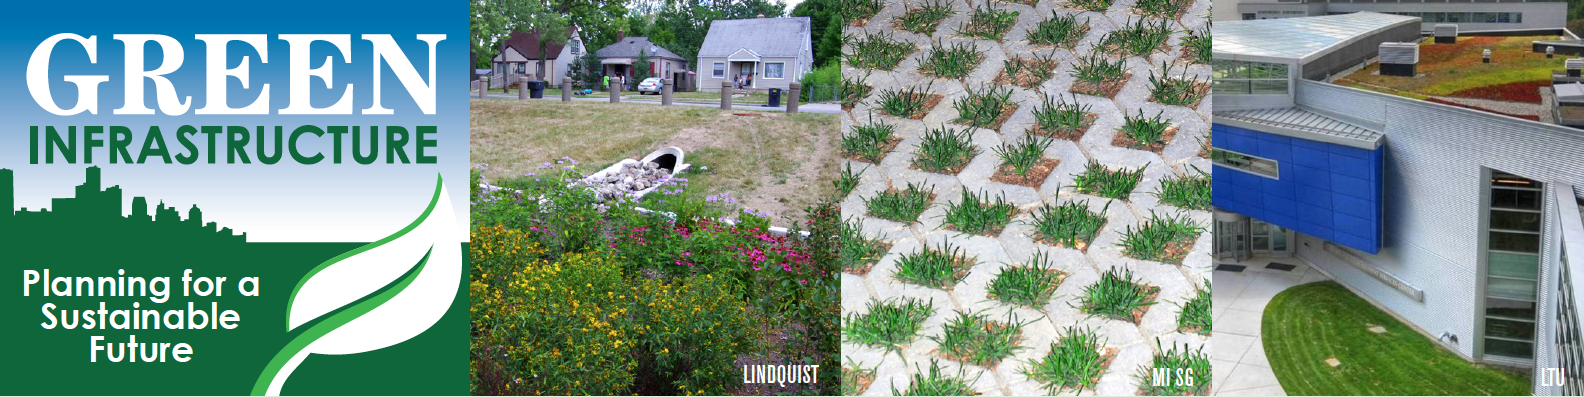 Green Infrastructure images, green roof, permeable pavement and a rain barrel